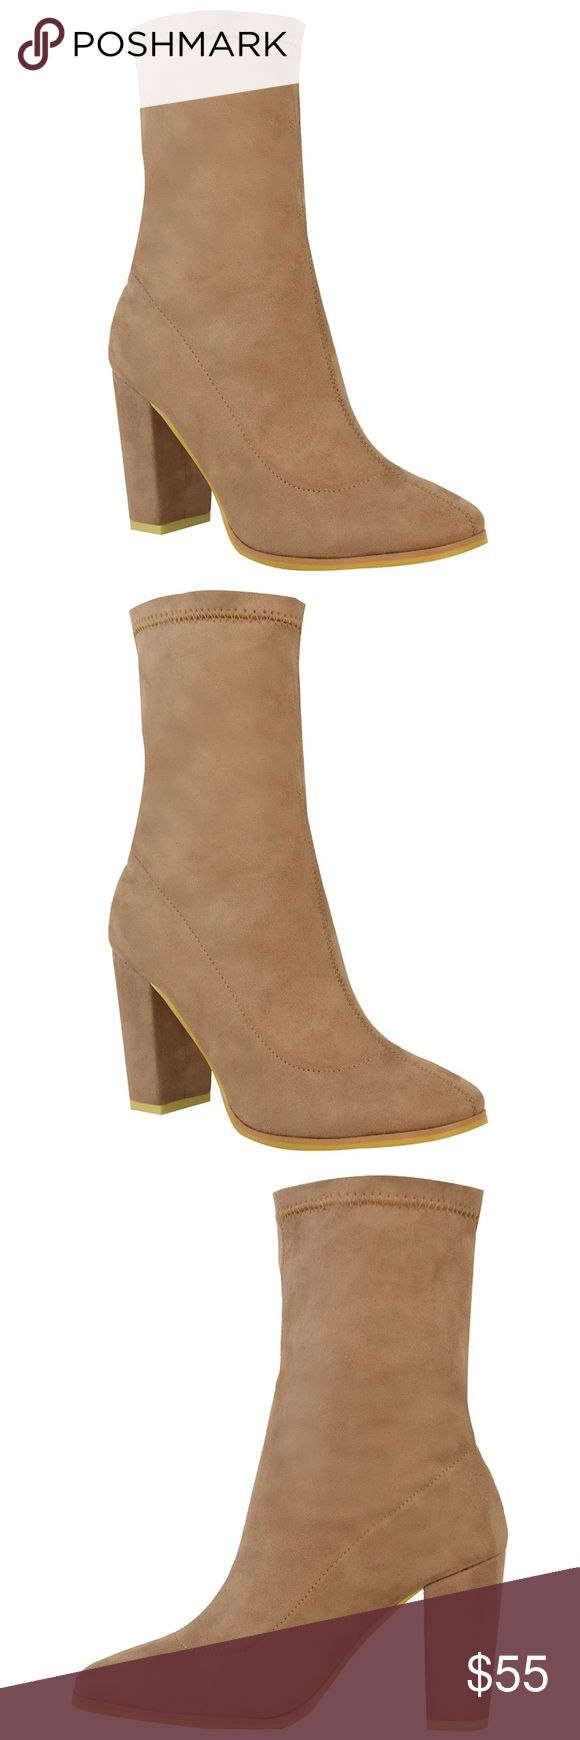 """• New arrival • Nude sock booties Nude sock booties ↠ Sizes 6, 7, 8 available ↠ Faux suede ↠ As seen on Kylie Jenner!!!! ↠ Heel: 3.6"""" ↠ Pull on fastening, zipper on side Shoes Ankle Boots & Booties"""